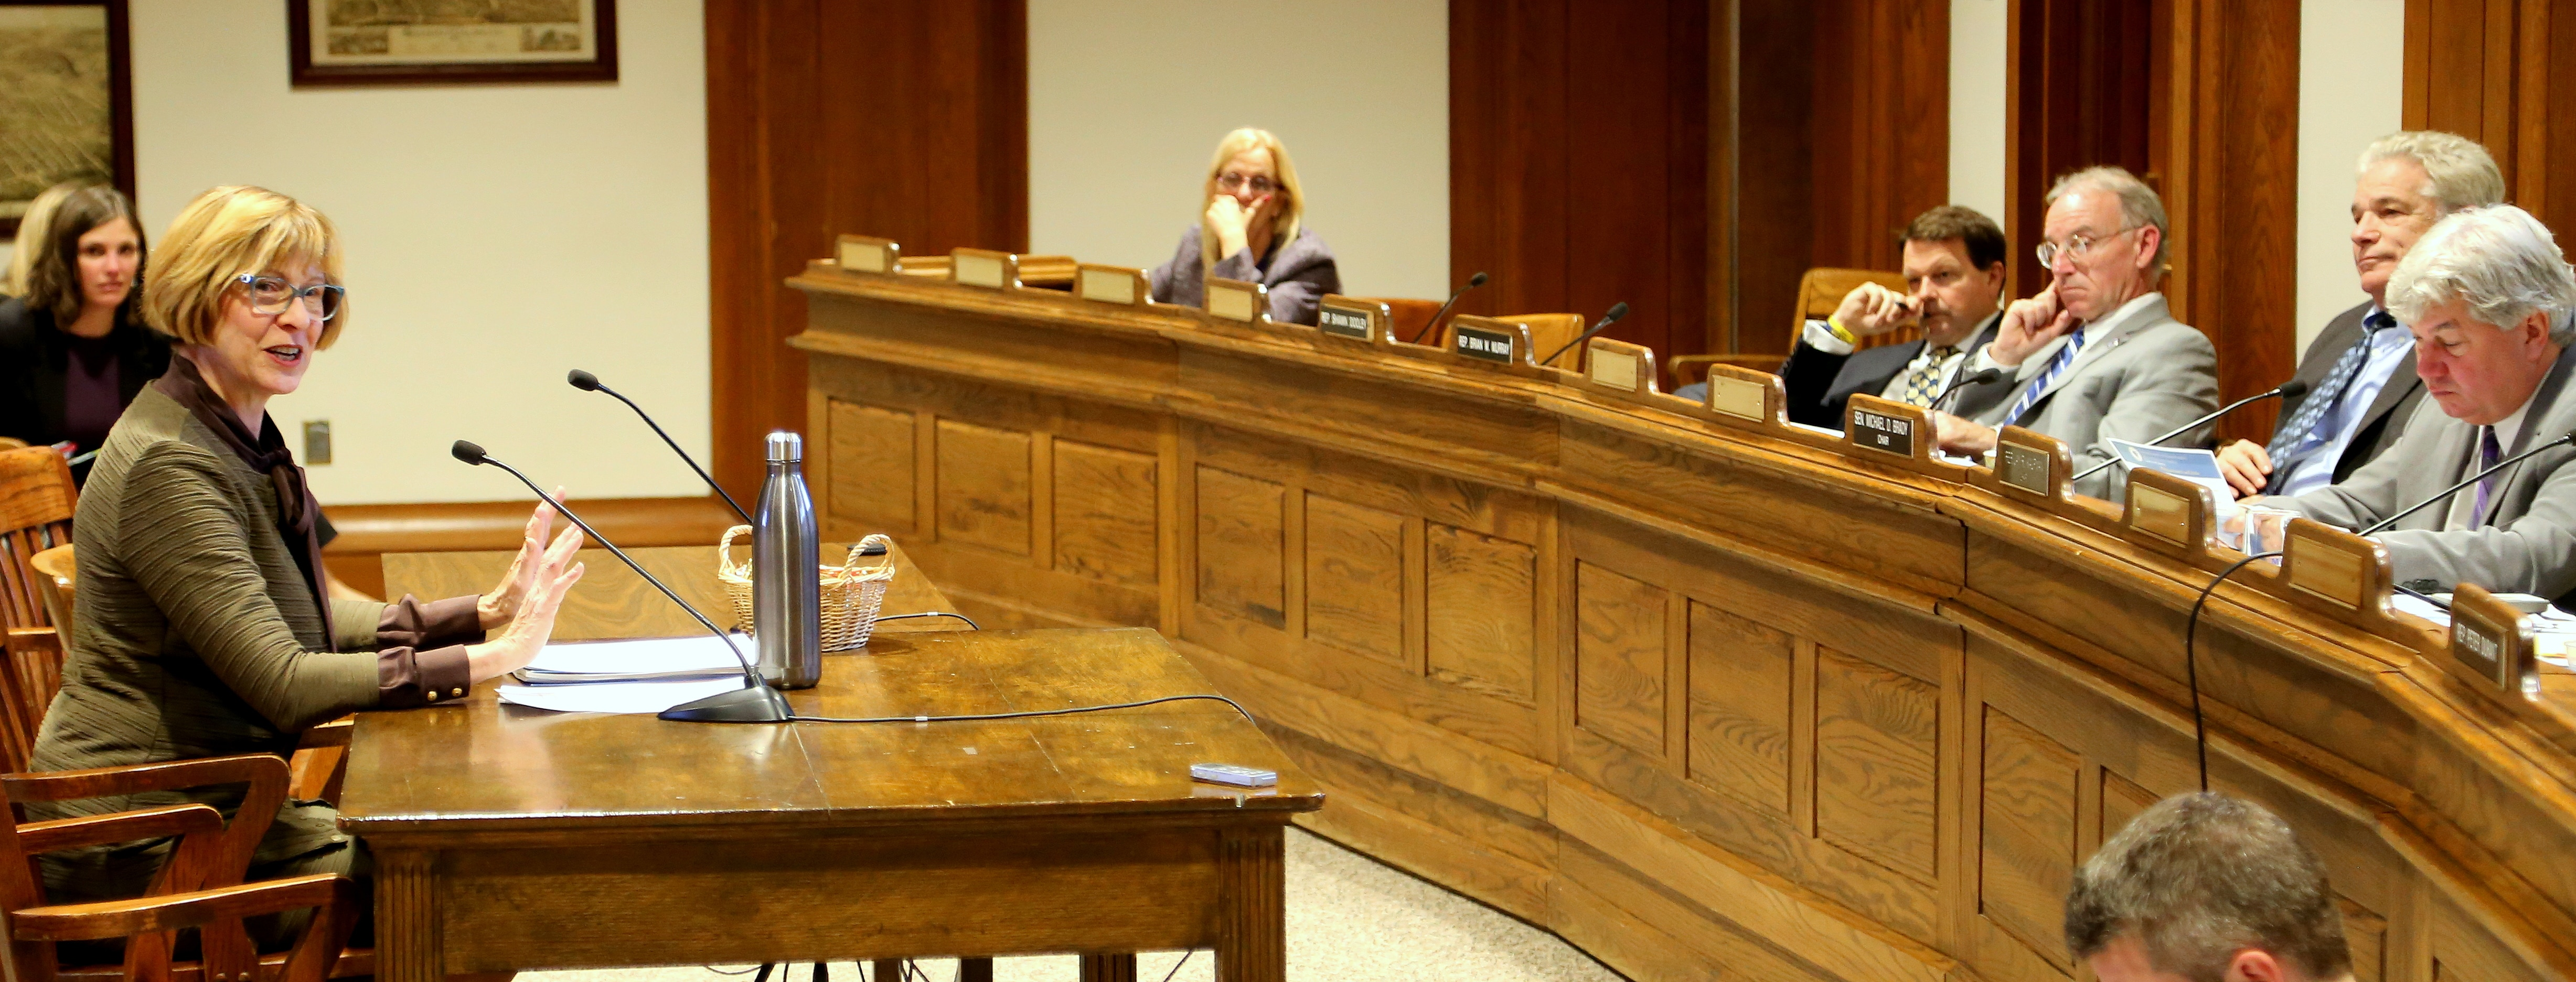 Auditor Bump testifies about the Revenue Accountability Act, a key part of her Accountability Agenda at the State House